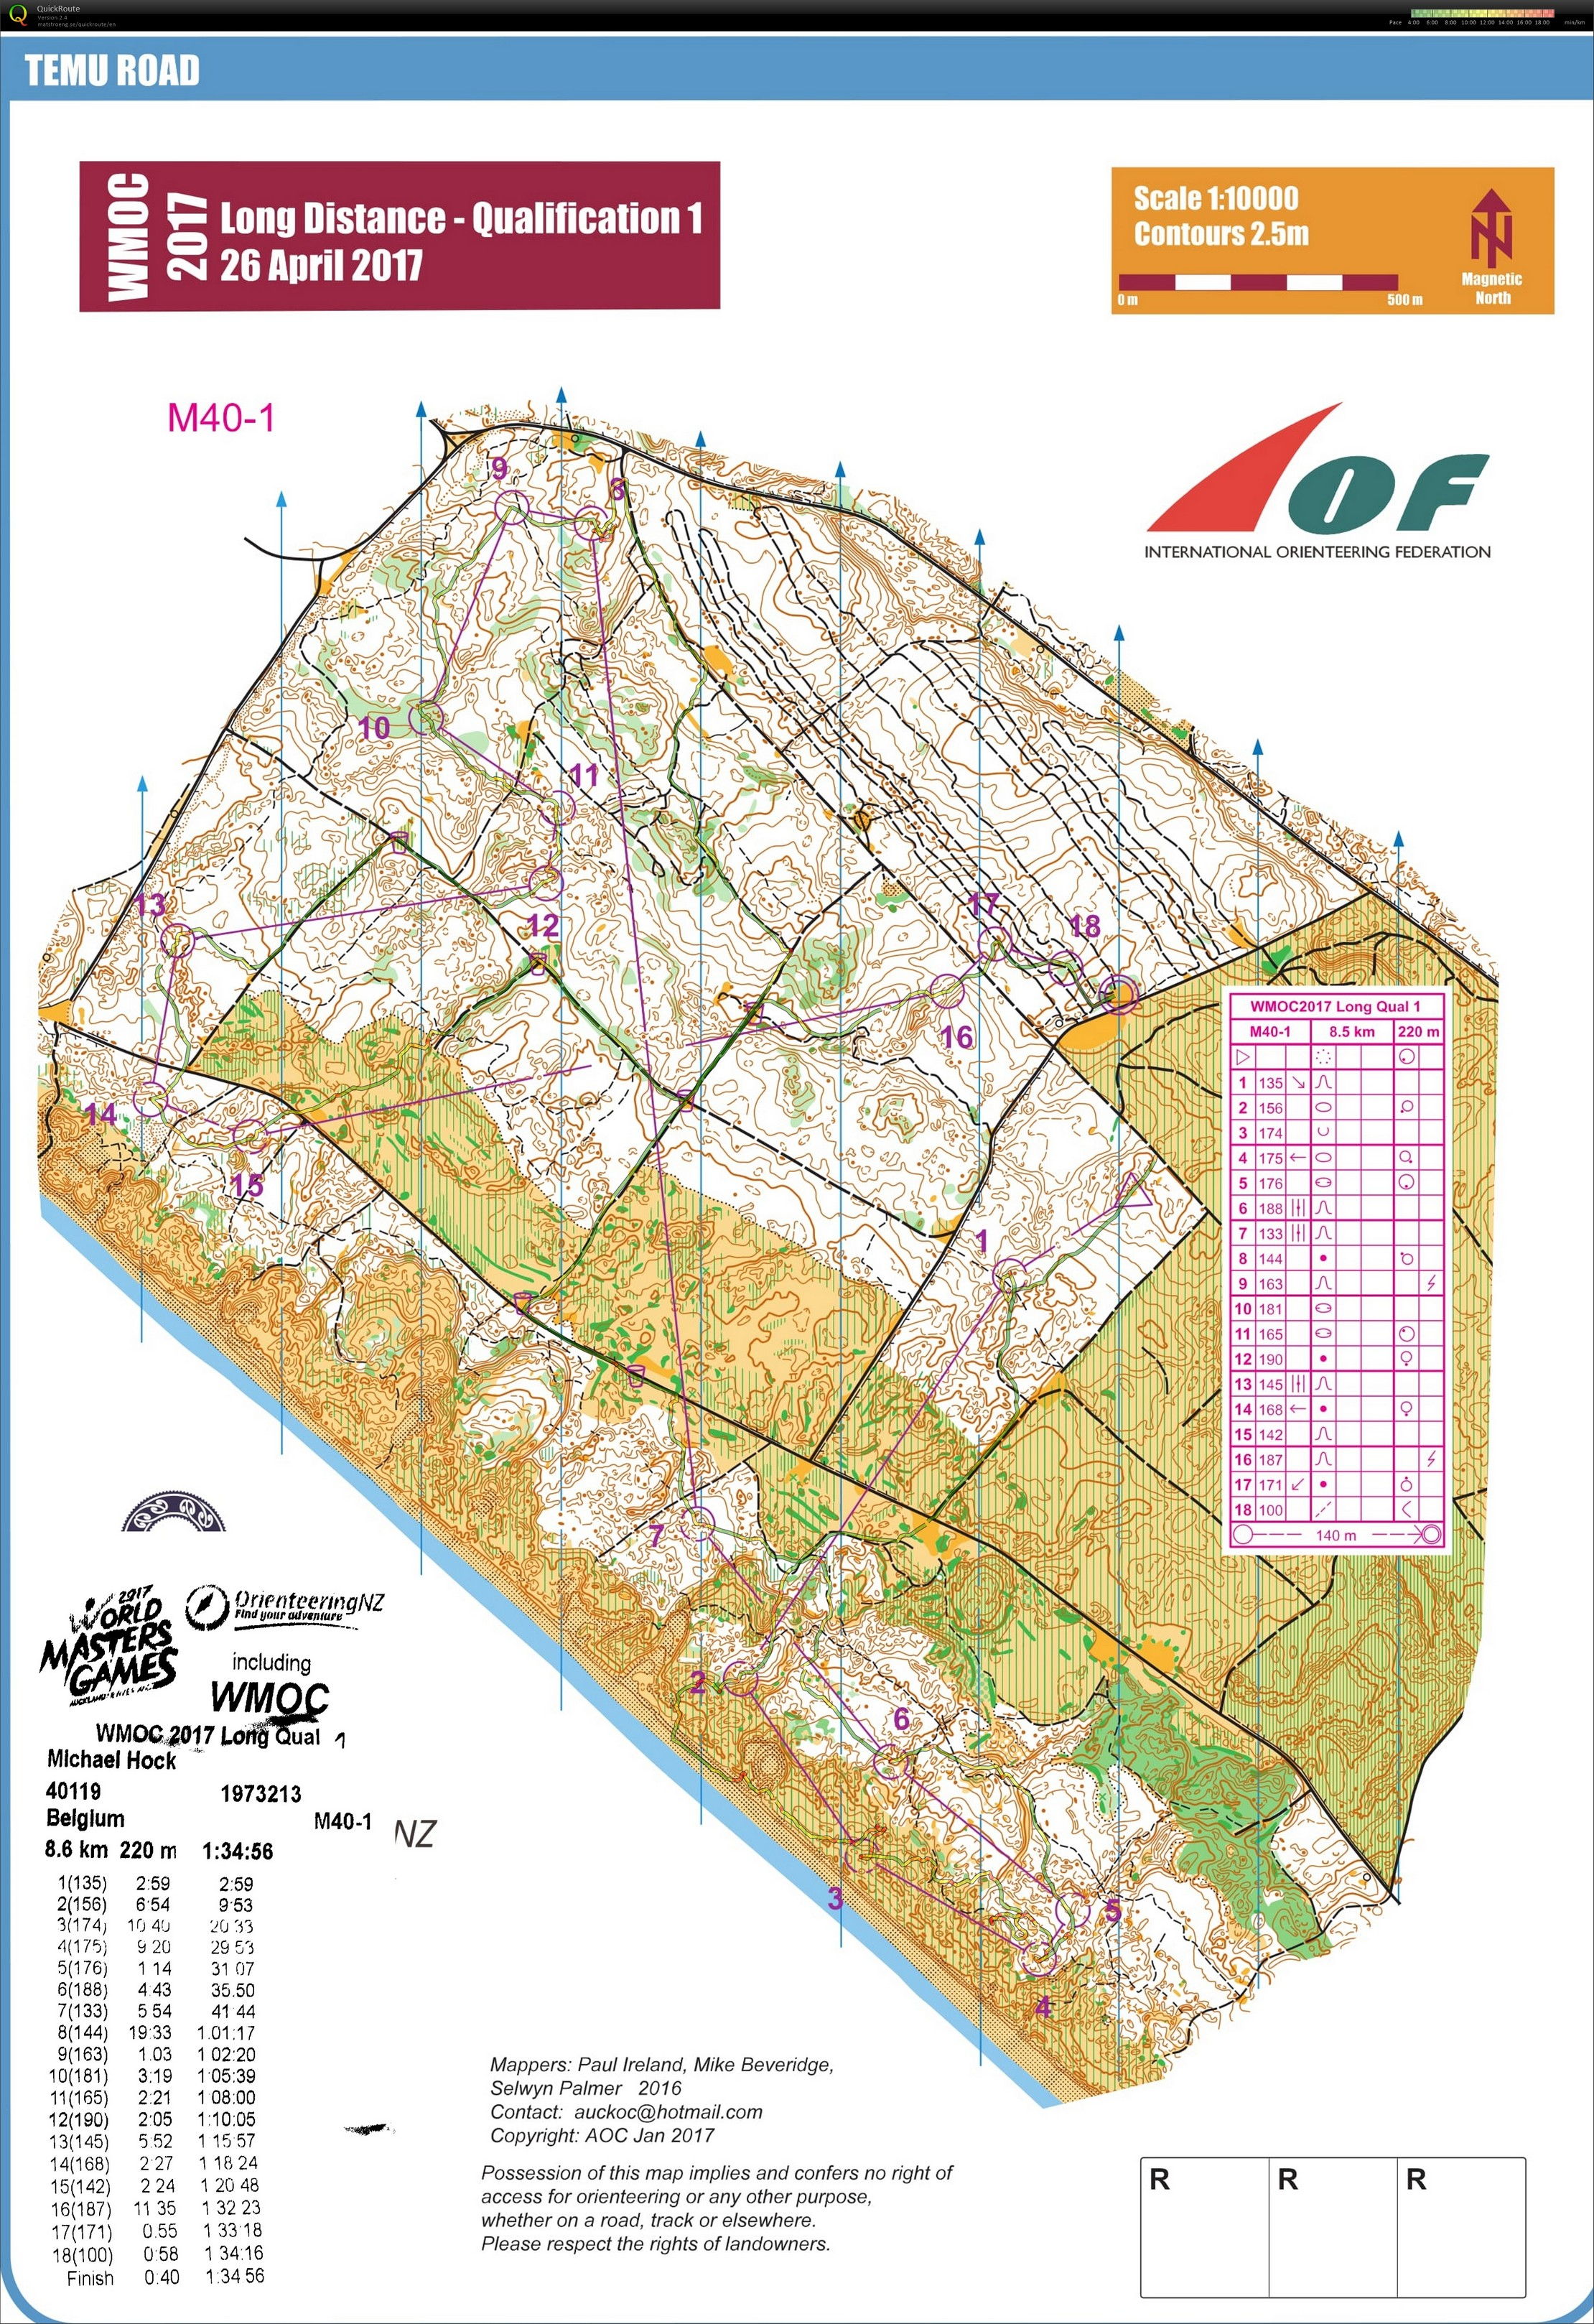 WMOC 2017 Long Qualification 1 (25.04.2017)